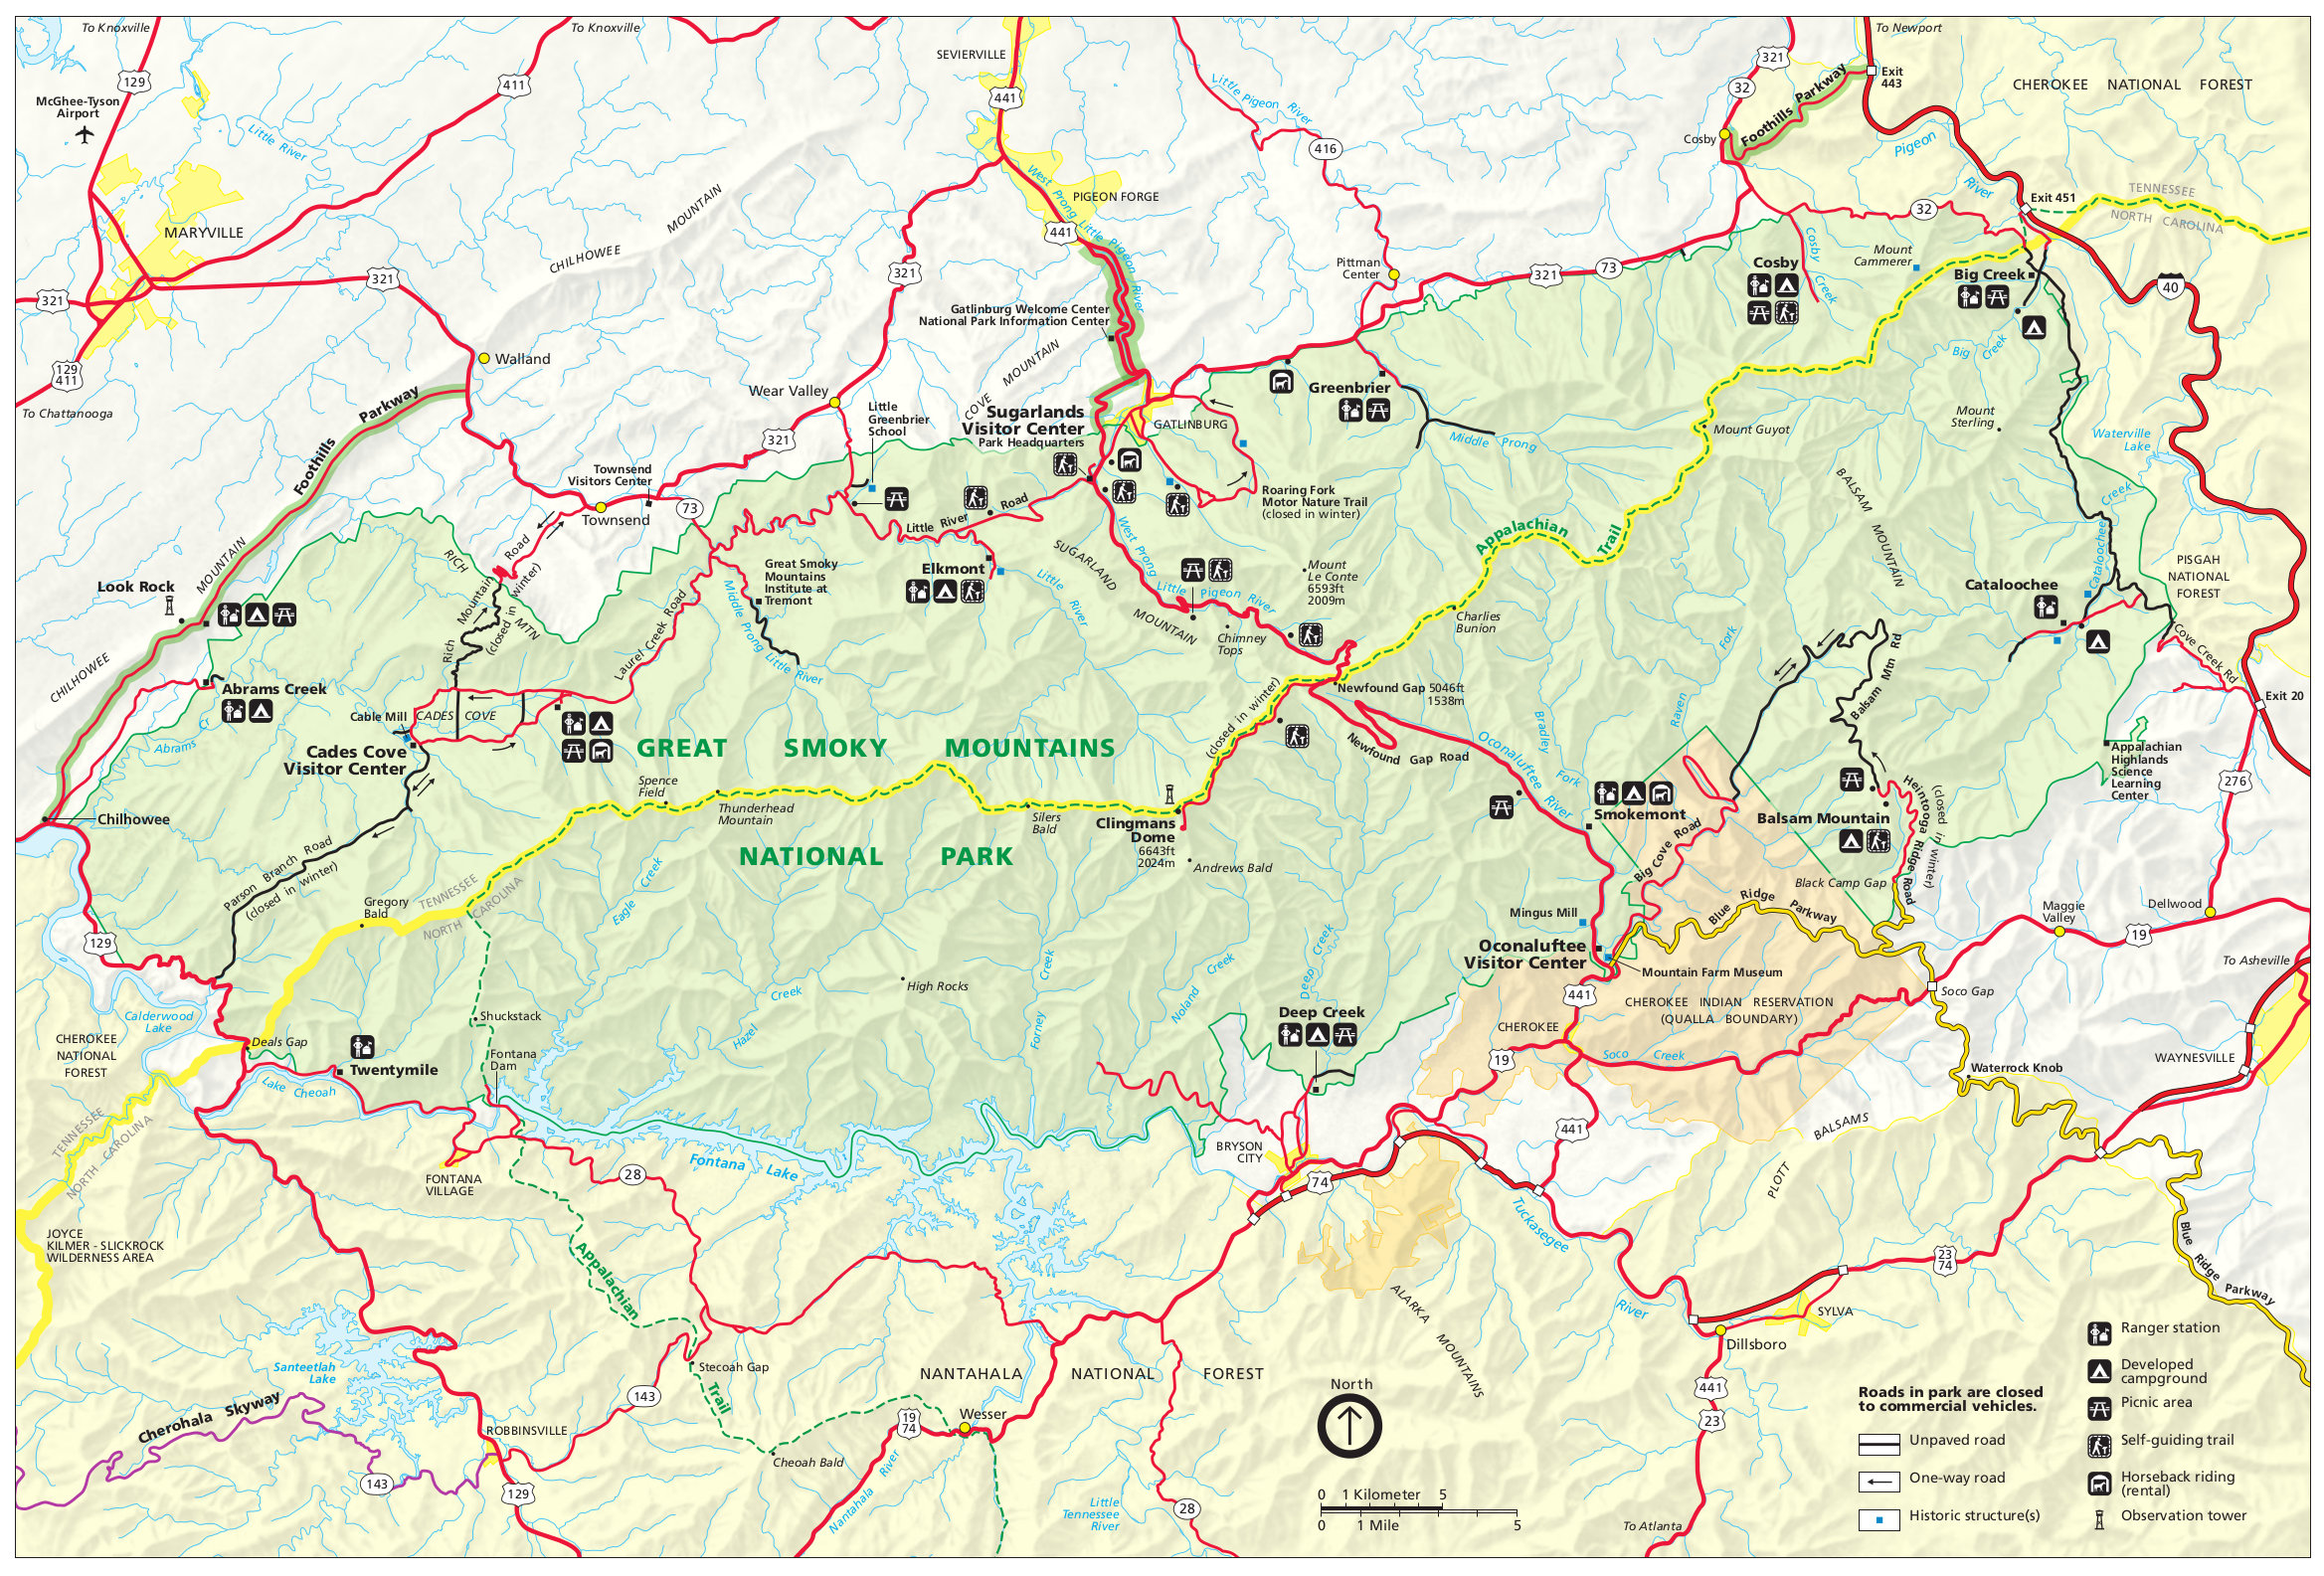 Great Smoky Mountains Map Great Smoky Mountains Maps | NPMaps.  just free maps, period.